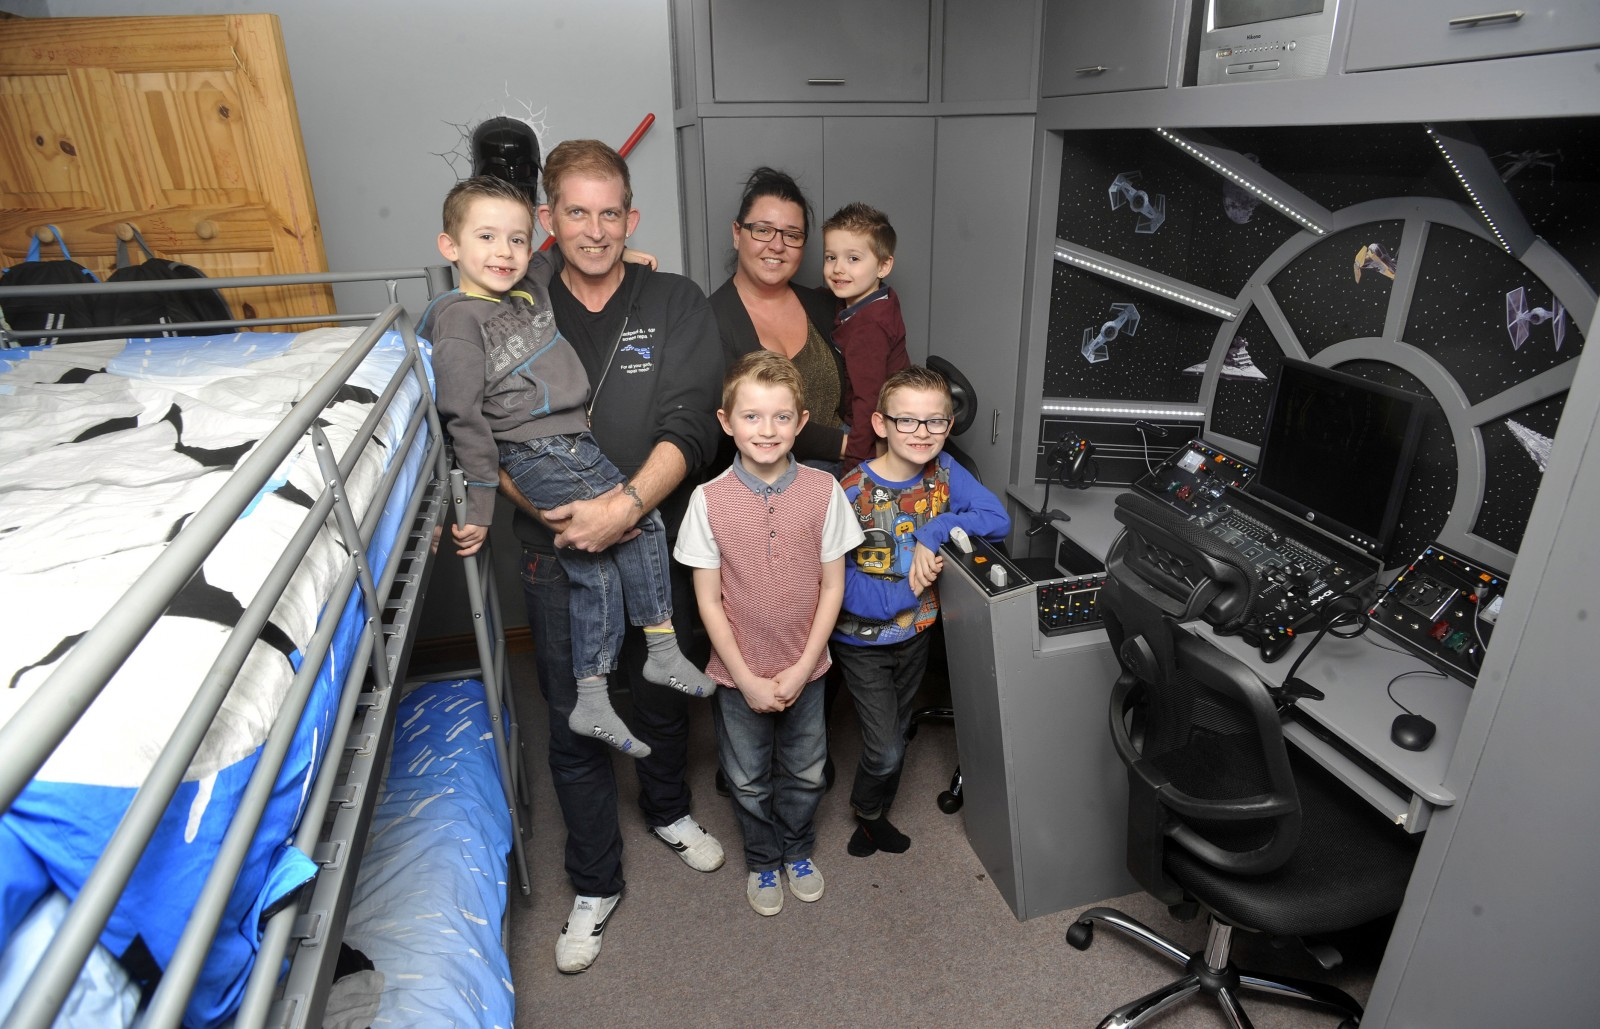 (L-R)Spencer, dad David, Dylan, mum Emma with Taylor and George in the Millennium Falcon bedroom in Thornton-Cleveleys, Lancs., See Ross Parry Copy RPYSTAR : A devoted dad gave his kids a present that was out of this world - by transforming their room into a life-size replica of a Star Wars SPACESHIP. David Bonney, 47, surprised his Star Wars superfan kids, Dylan, nine, and George, eight, with a new bedroom based on the iconic Millennium Falcon from the hit movie franchise. The father-of-five hid his efforts for a month from his two sons who had no idea their sci-fi fantasies were about to come to life. 9 March 2016.